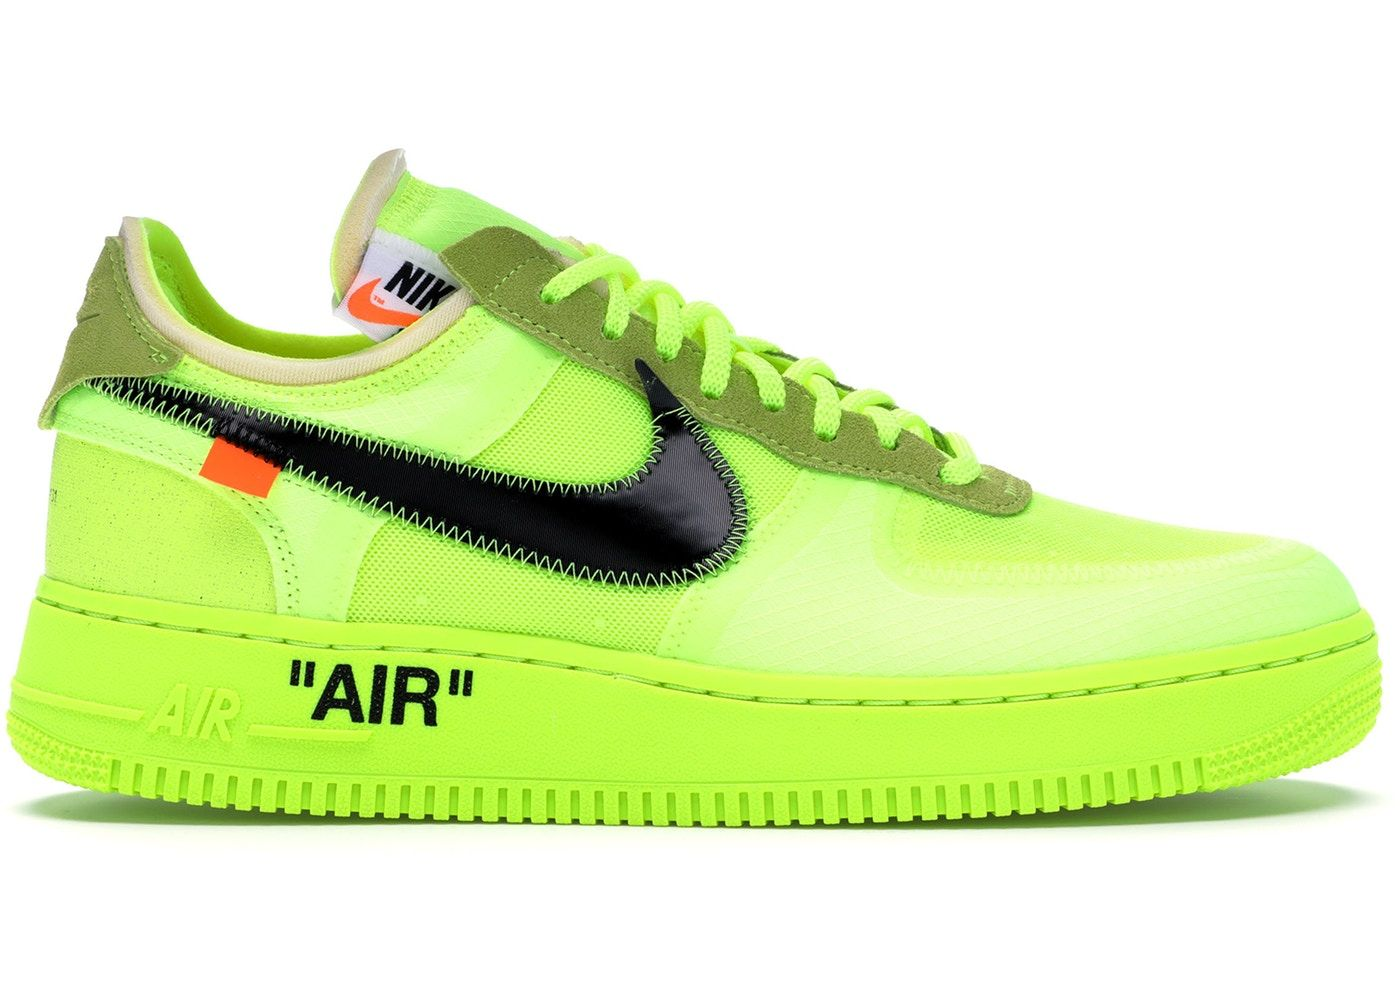 Nike Air Force 1 Low OffWhite Volt Air force shoes